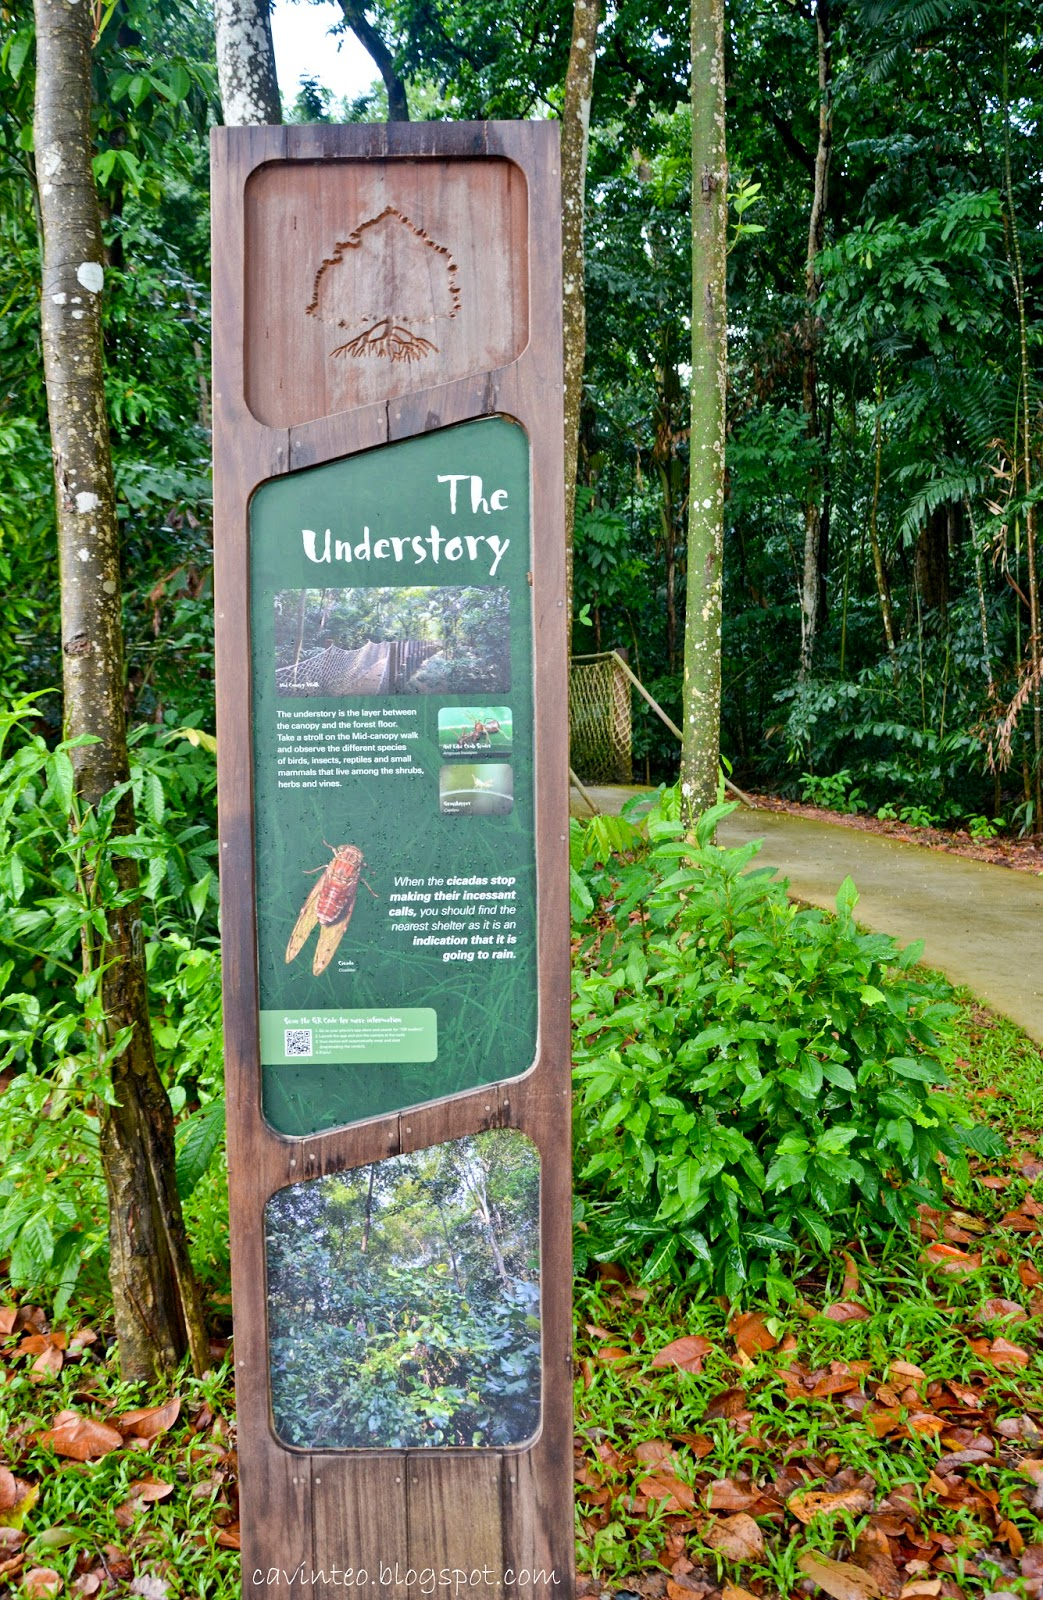 ... HSBC Treetop Walk i can feel my heartstrings tugging me towards the canopy walk at Sungei Buloh Wetland Reserve Extension when i saw the sign. & Entree Kibbles: The Understory - Mid Canopy Walk @ Sungei Buloh ...